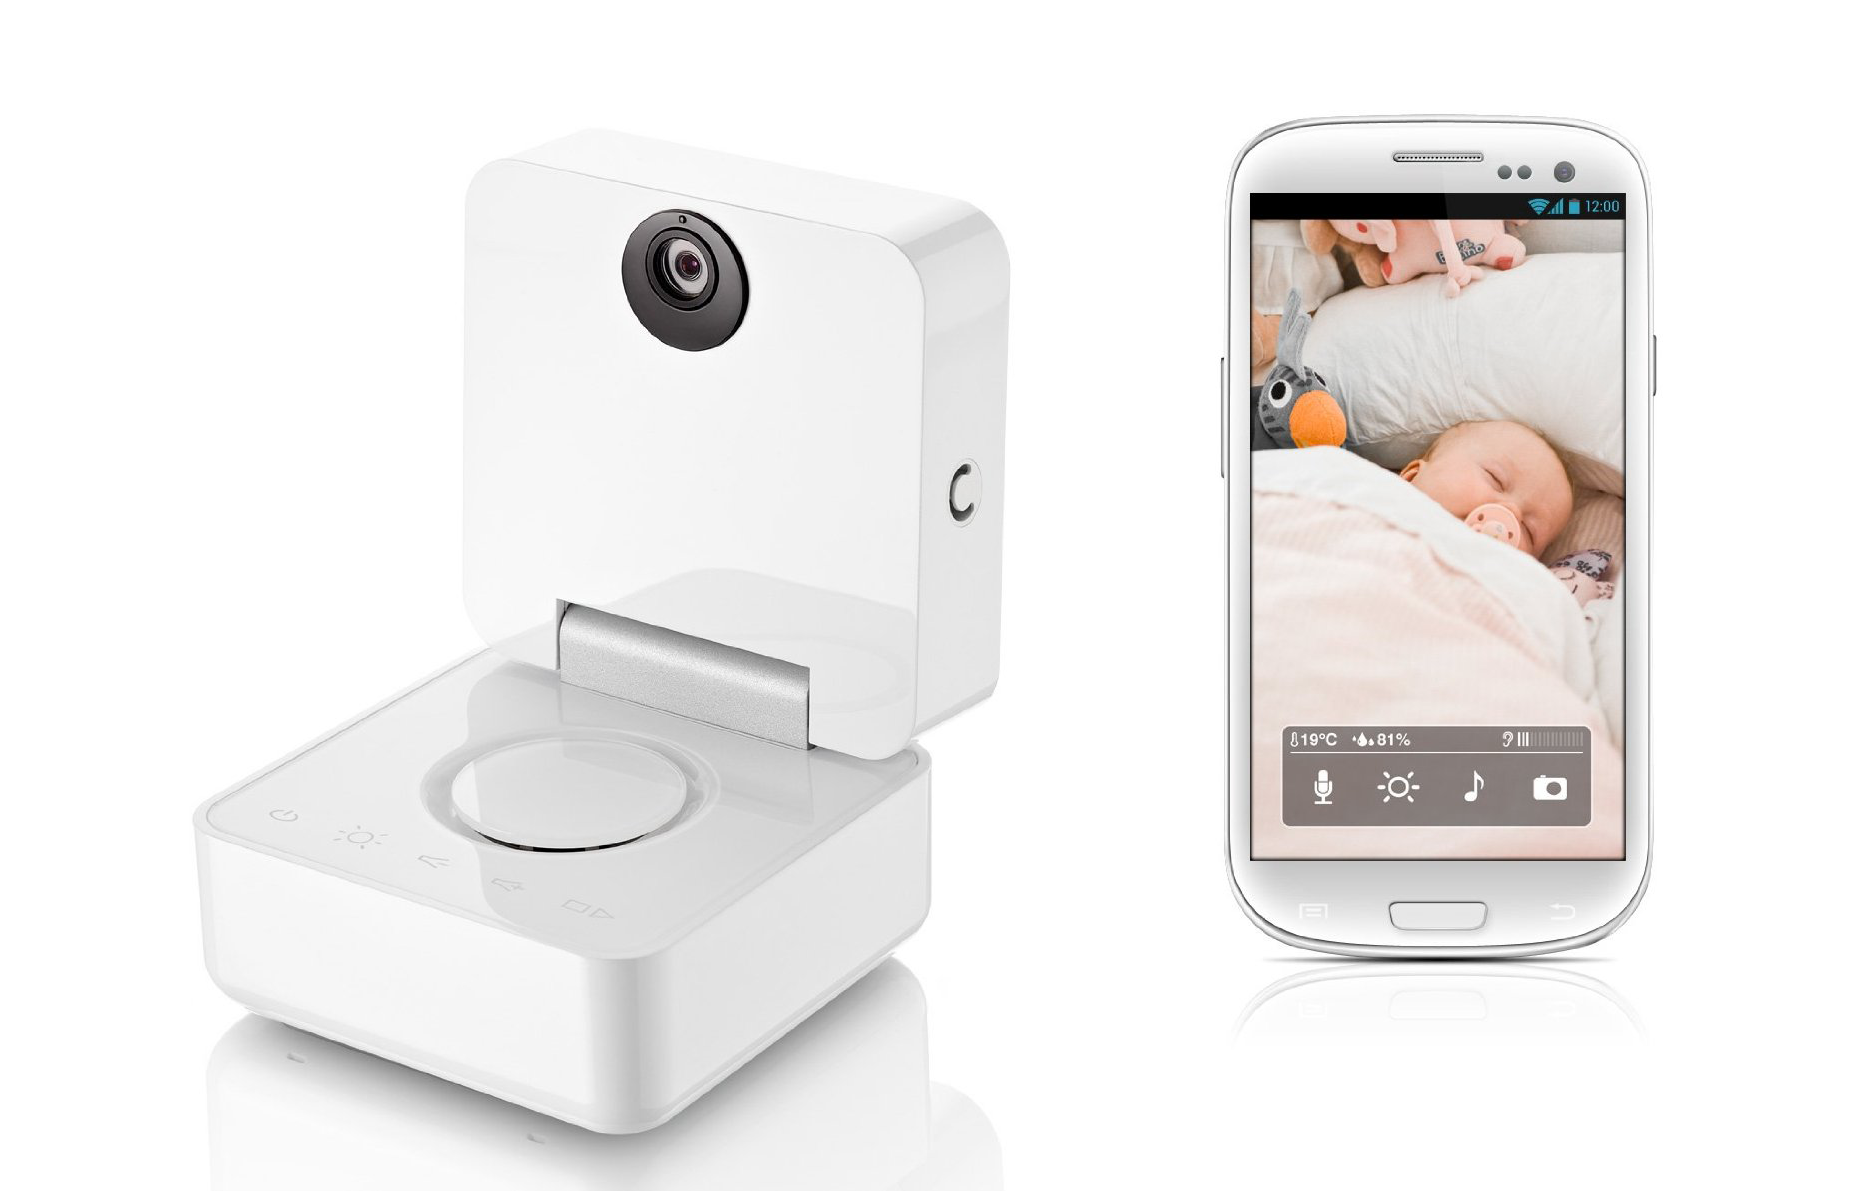 smart baby monitor le babyphone connect par withings tuttiquanti tout sur le quantified. Black Bedroom Furniture Sets. Home Design Ideas